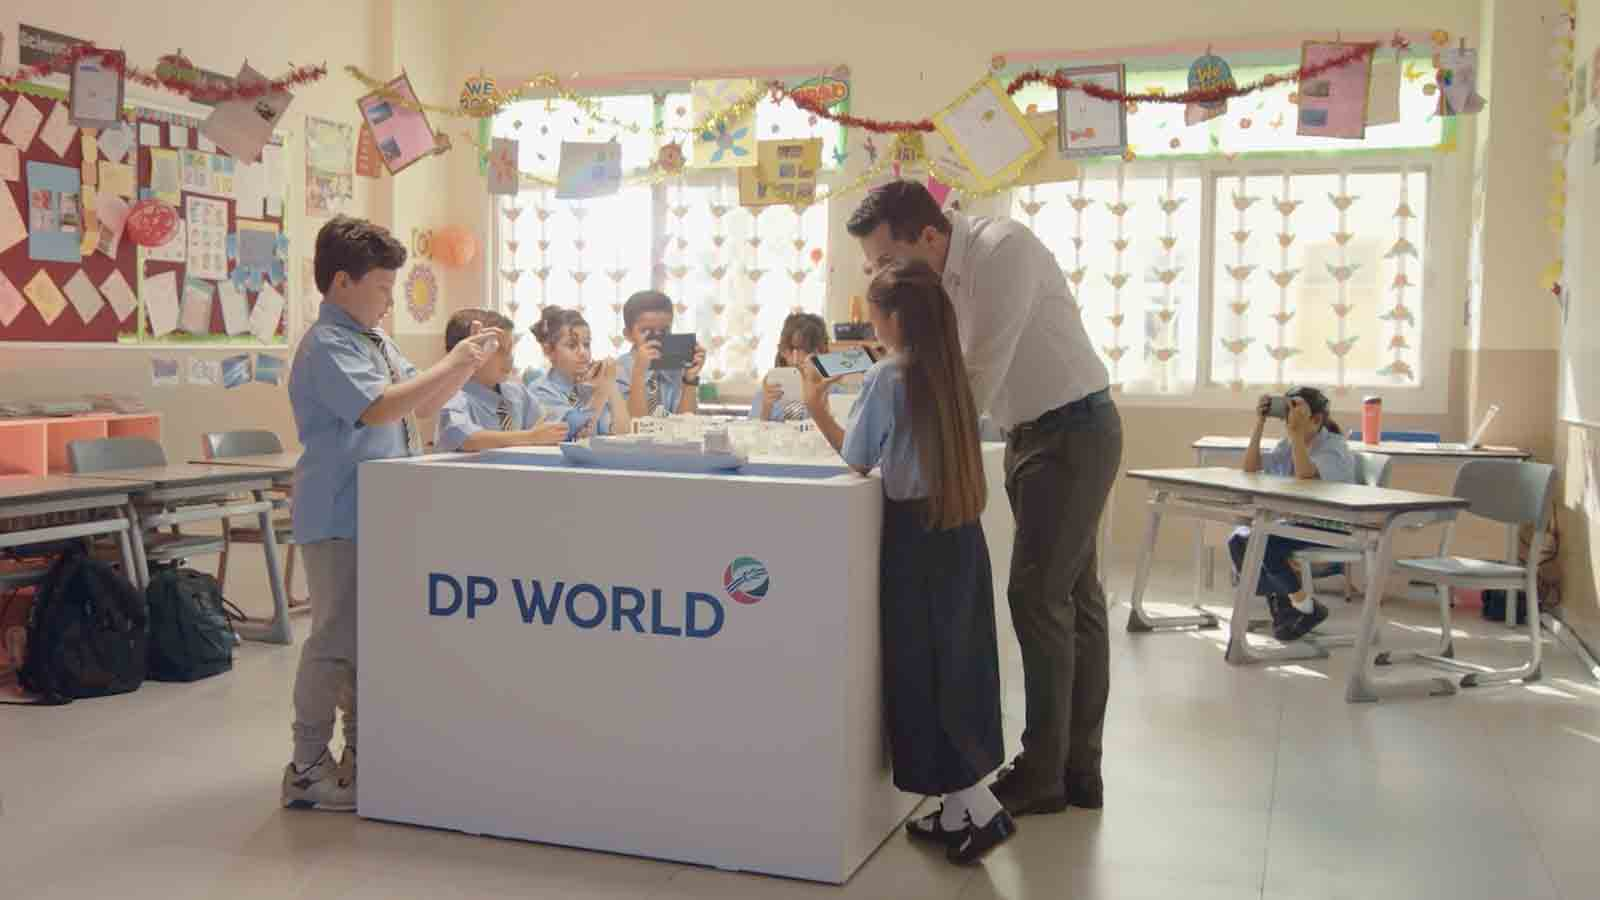 Children at DP World kiosk